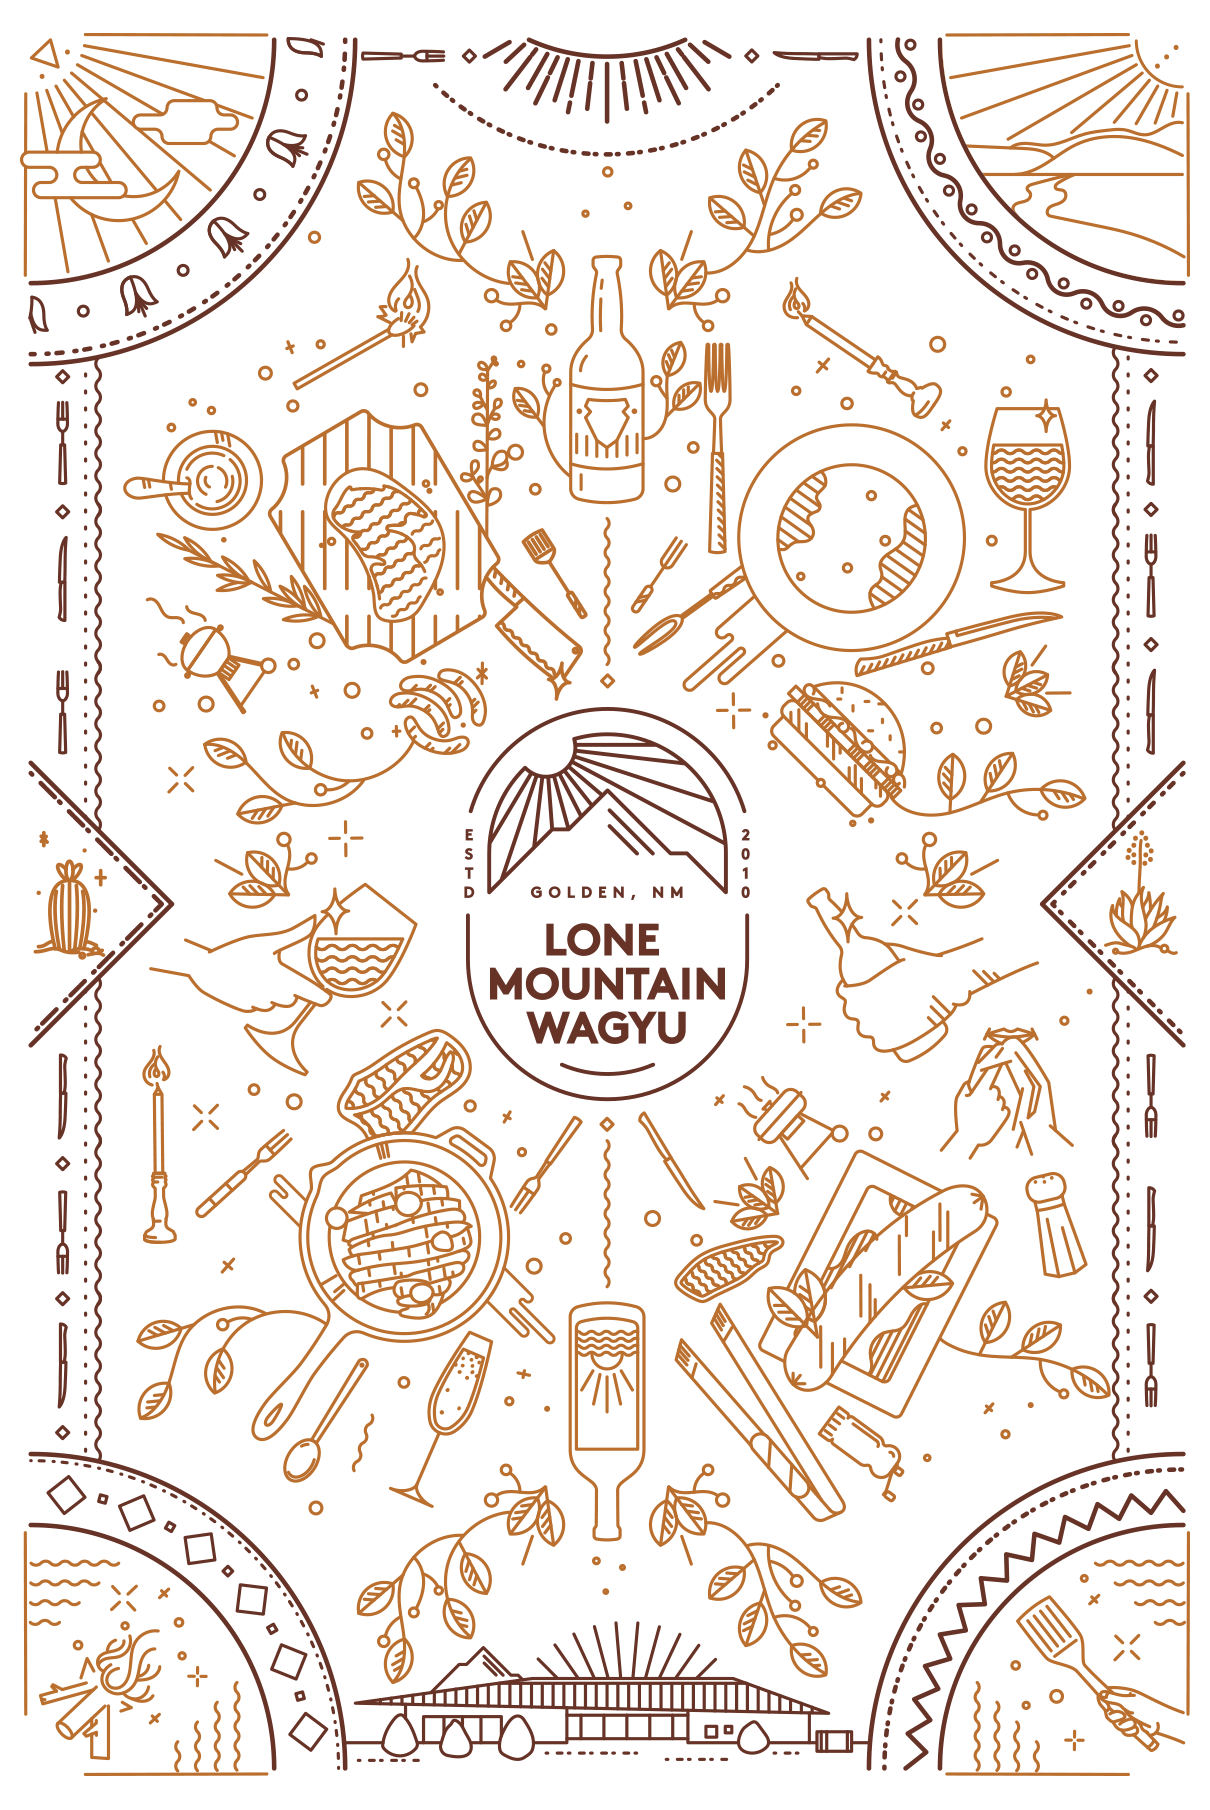 Eat Life to the Fullest branding iconography for Lone Mountain Wagyu by Tom Morhous and Remo+Oob, Ltd.